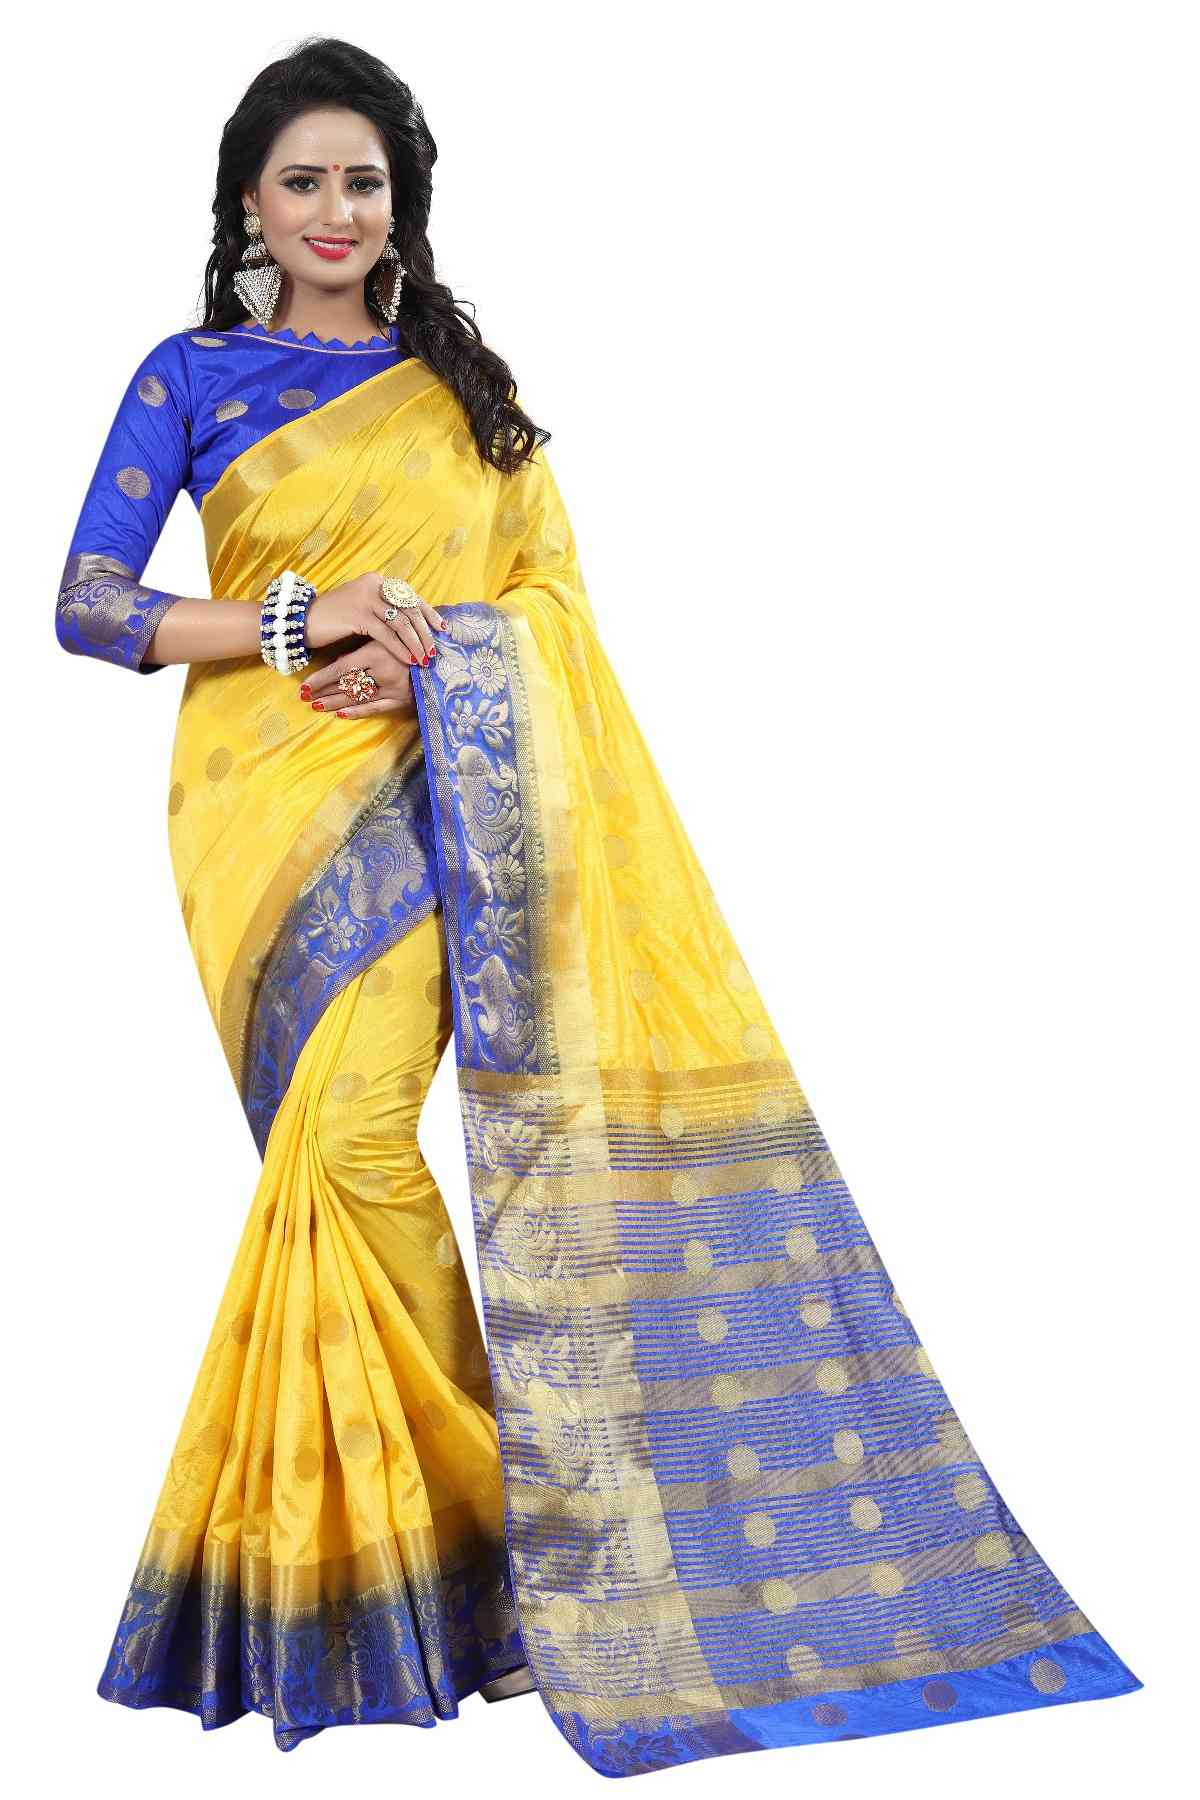 Women's New Cotton Silk Designer Saree - Maruti-GOLI2